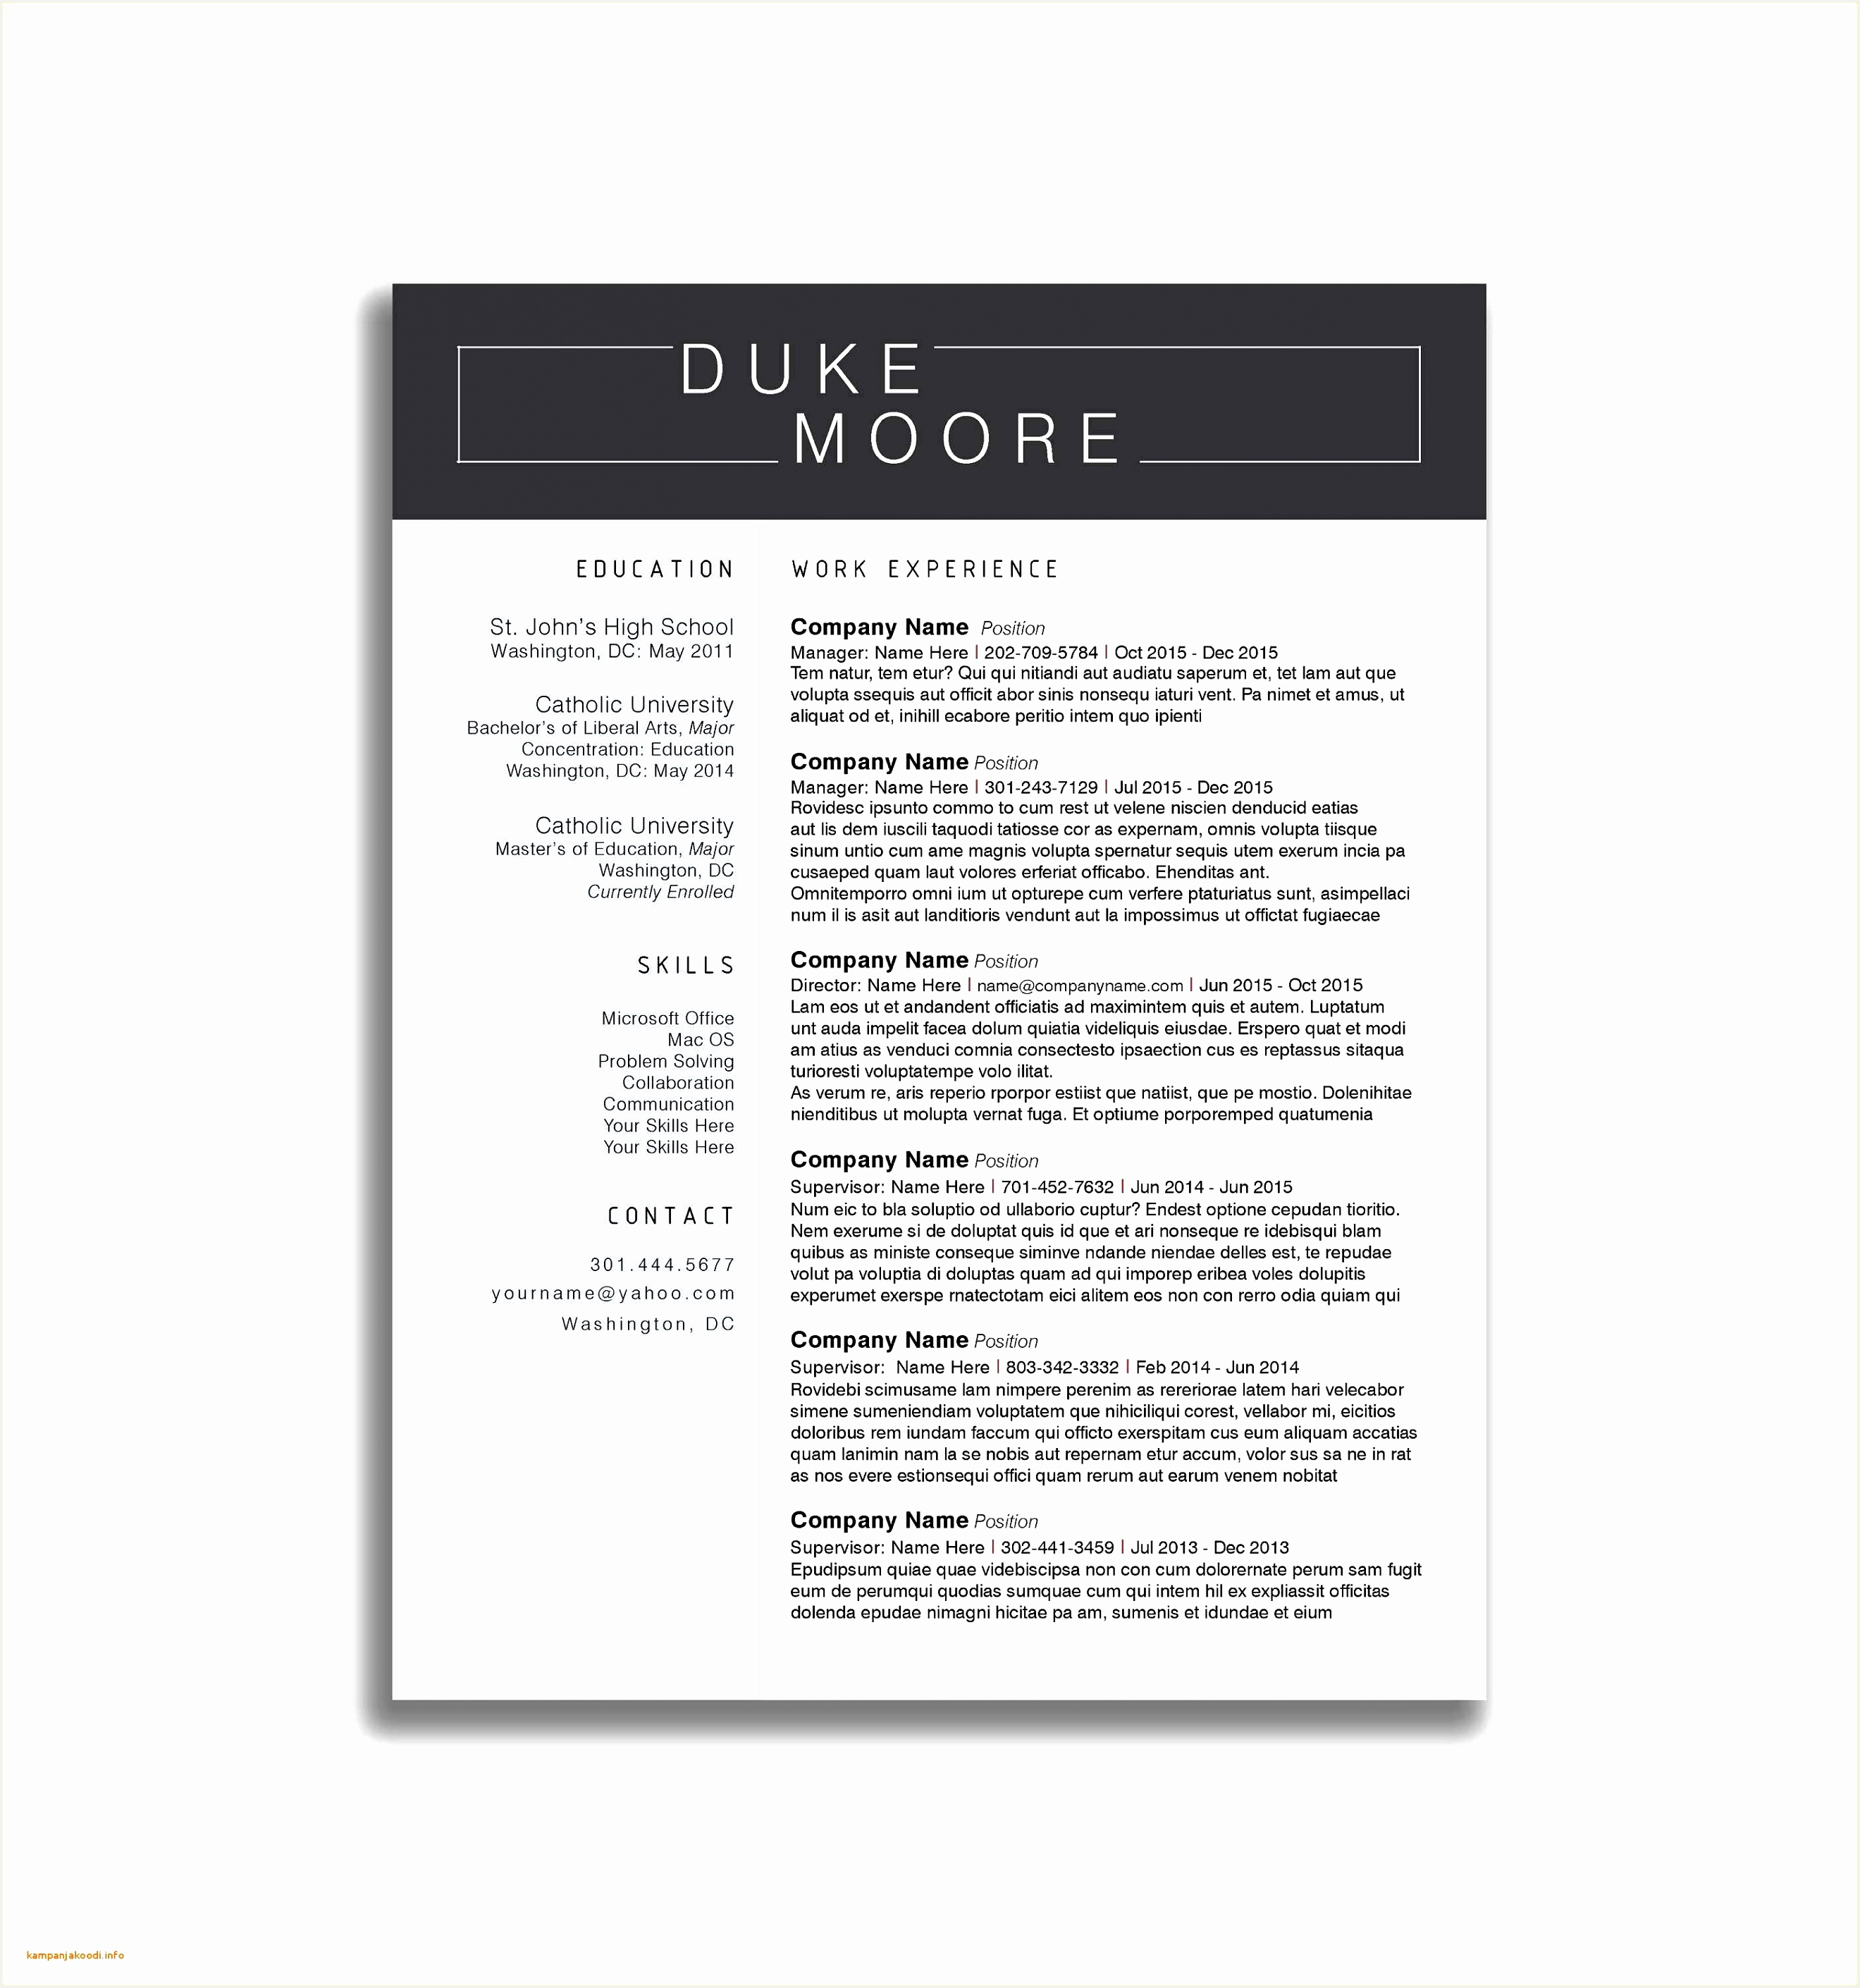 Sample Resume for Phlebotomist J3drg Fresh Resume Sample for Phlebotomist 42 Fresh Phlebotomy Resume Sample Of Sample Resume for Phlebotomist Buhal Fresh Entry Level Phlebotomy Resume Example Phlebotomist Resume Template